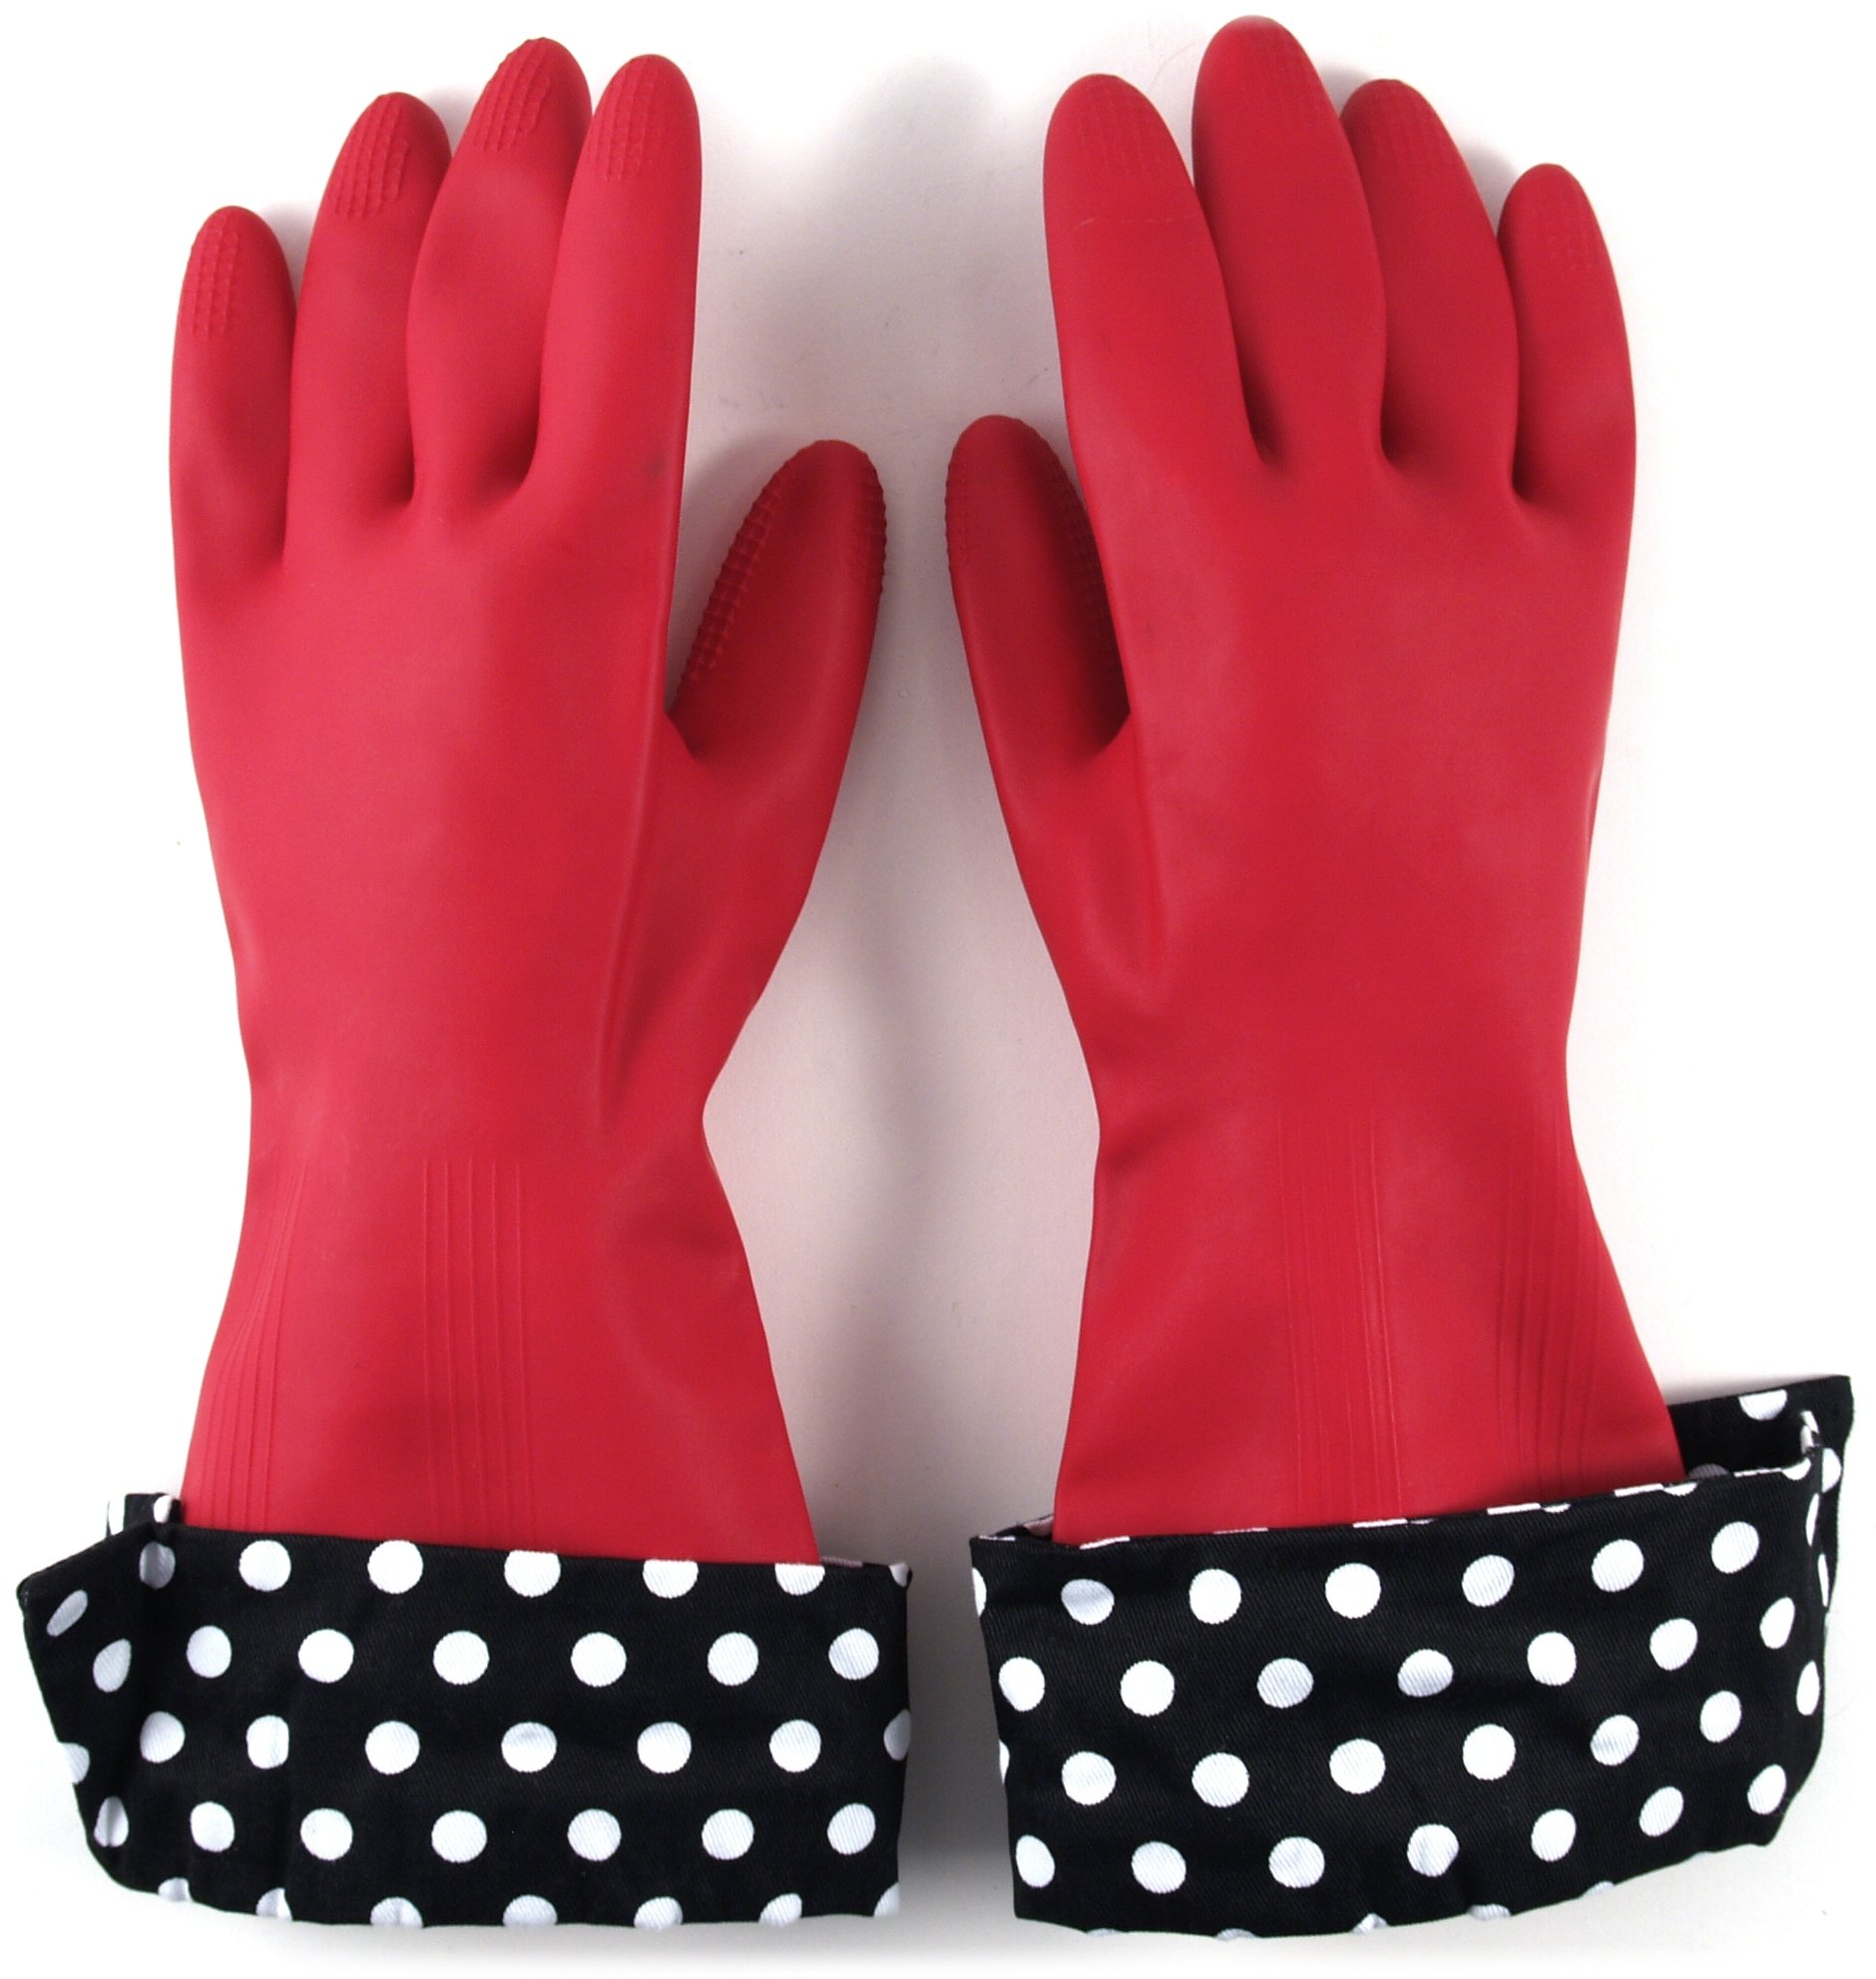 The Accidental Housewife Julie's Signature Latex Gloves with Designer Cuffs, 2 Pairs